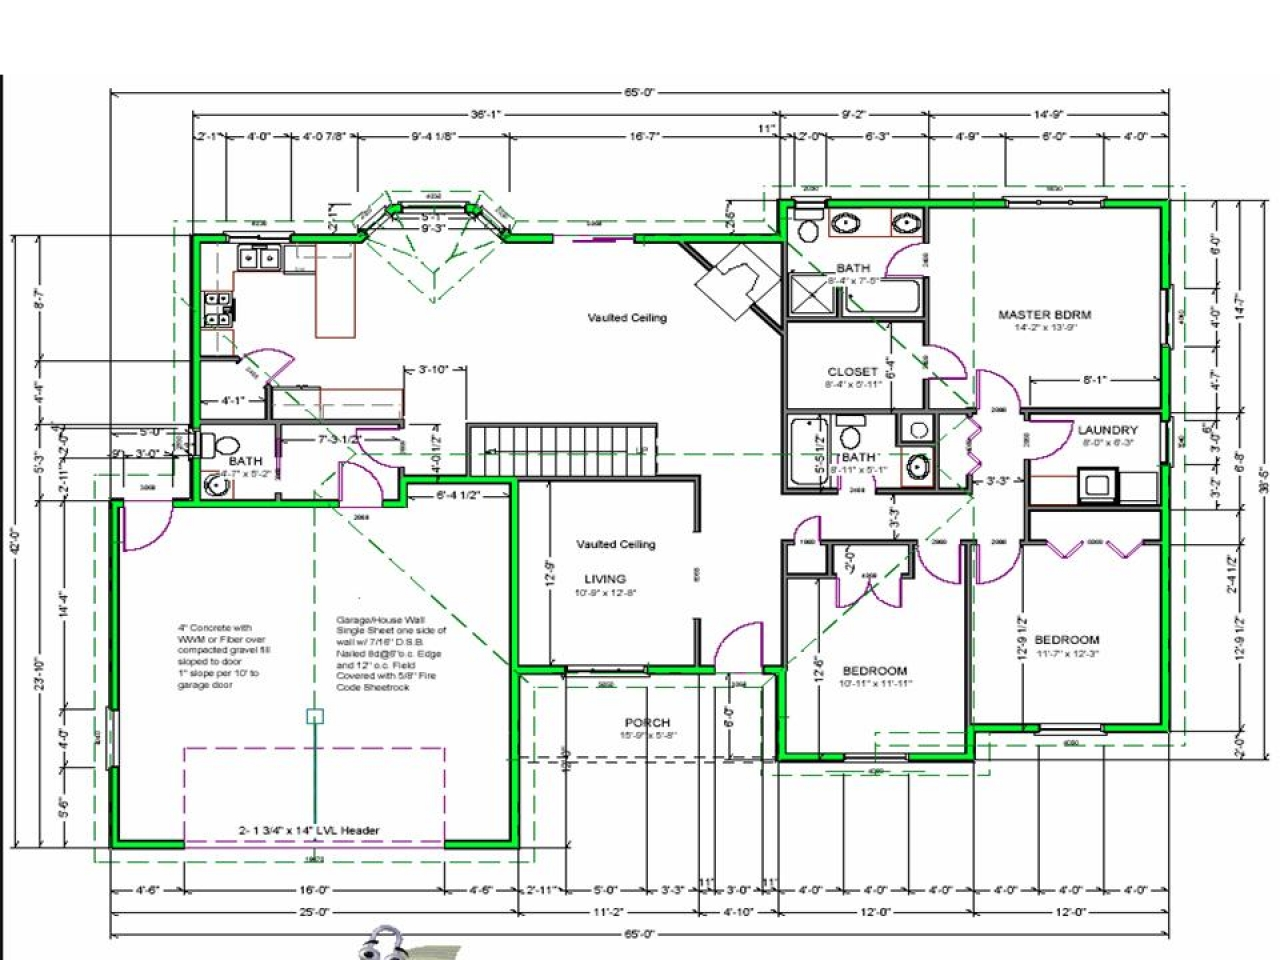 Floor Plan Drawing at GetDrawings.com | Free for personal use Floor ...